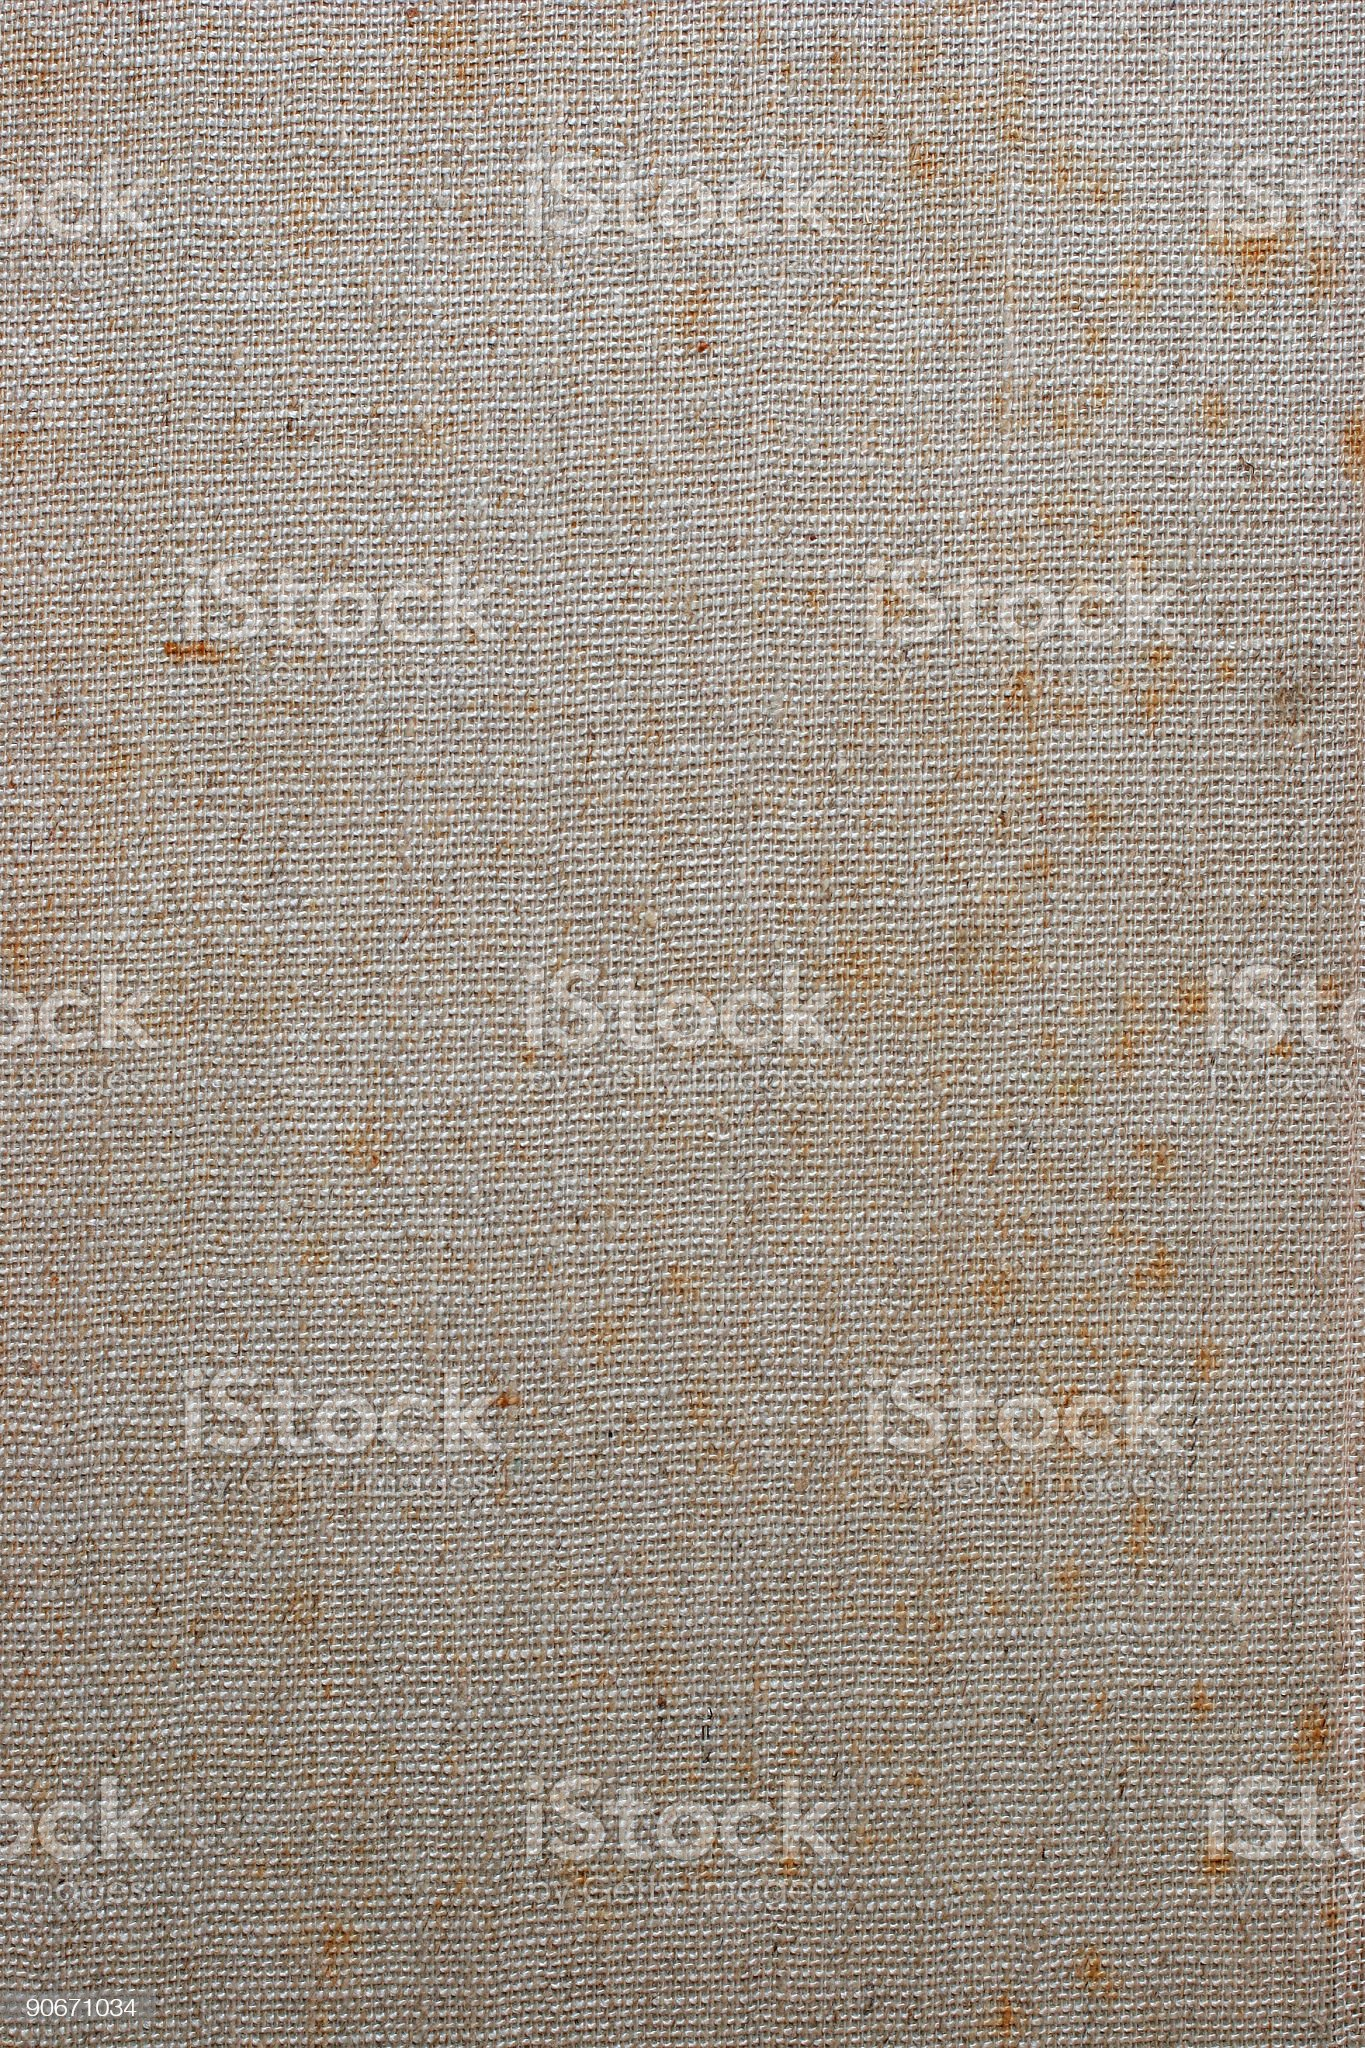 Stained Linen Background royalty-free stock photo